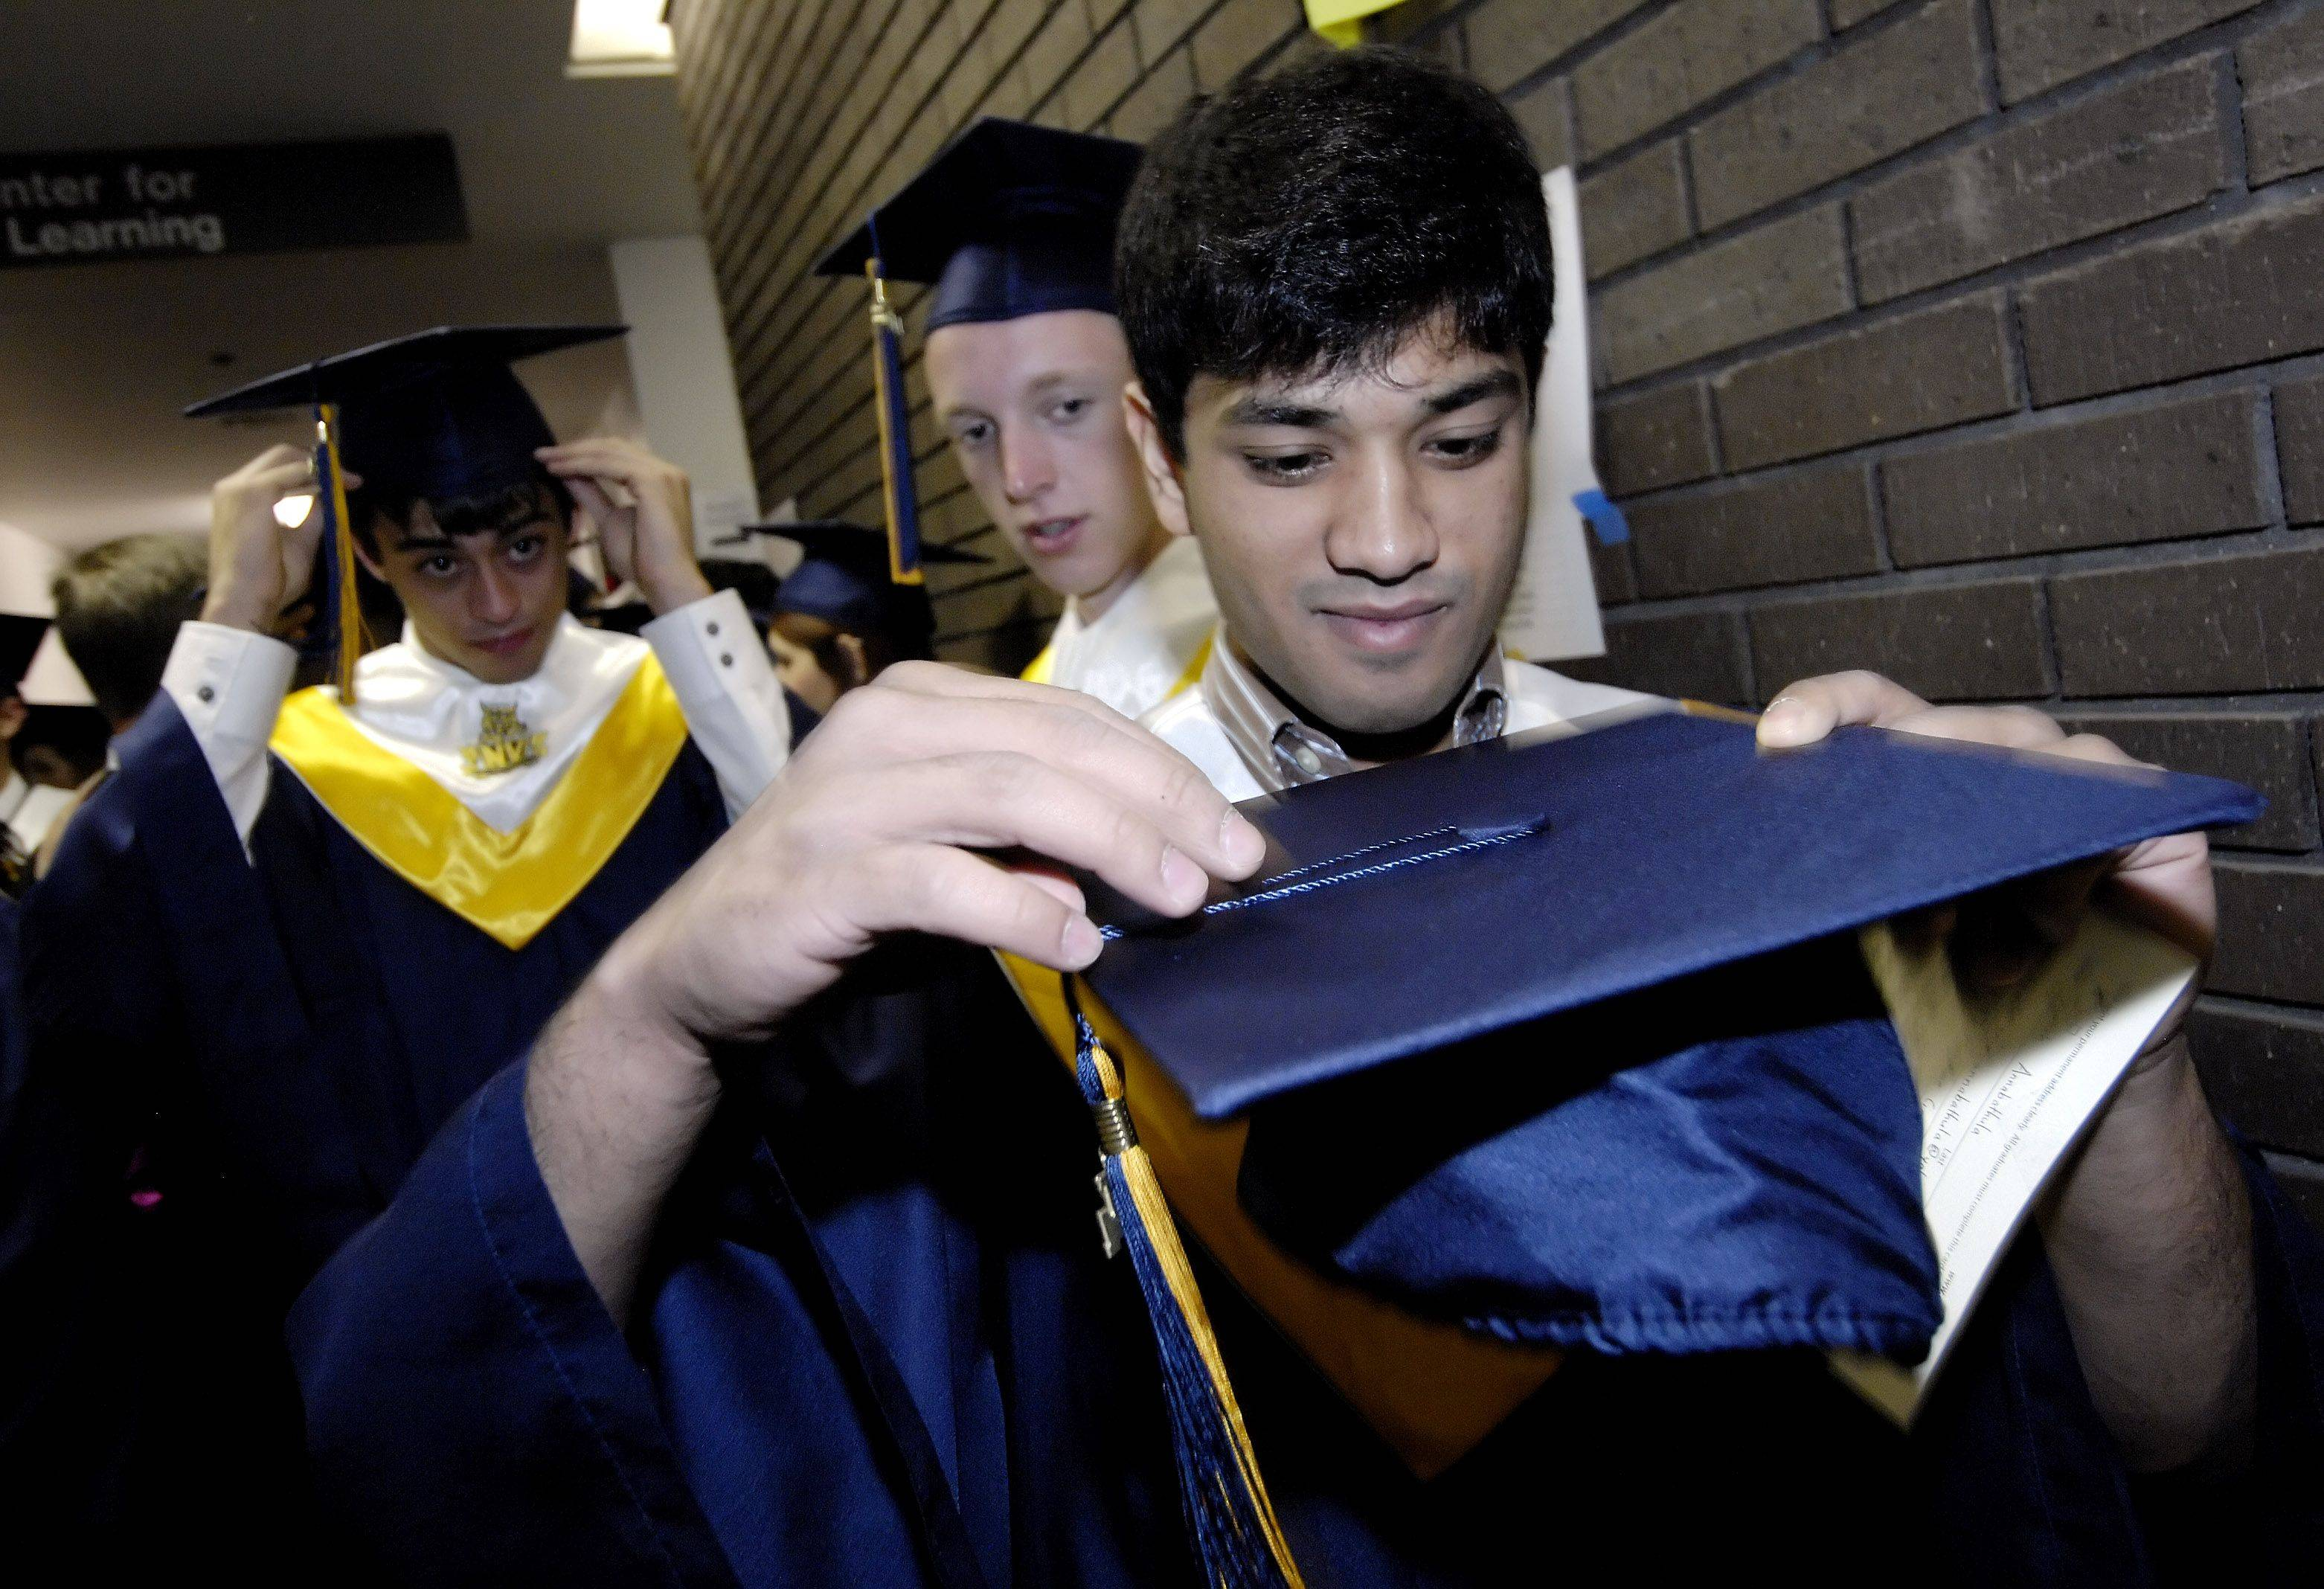 TJ Annabathula affixes his tassel to his mortar board as he waits for the start of the Neuqua Valley High School graduation at the College of DuPage.